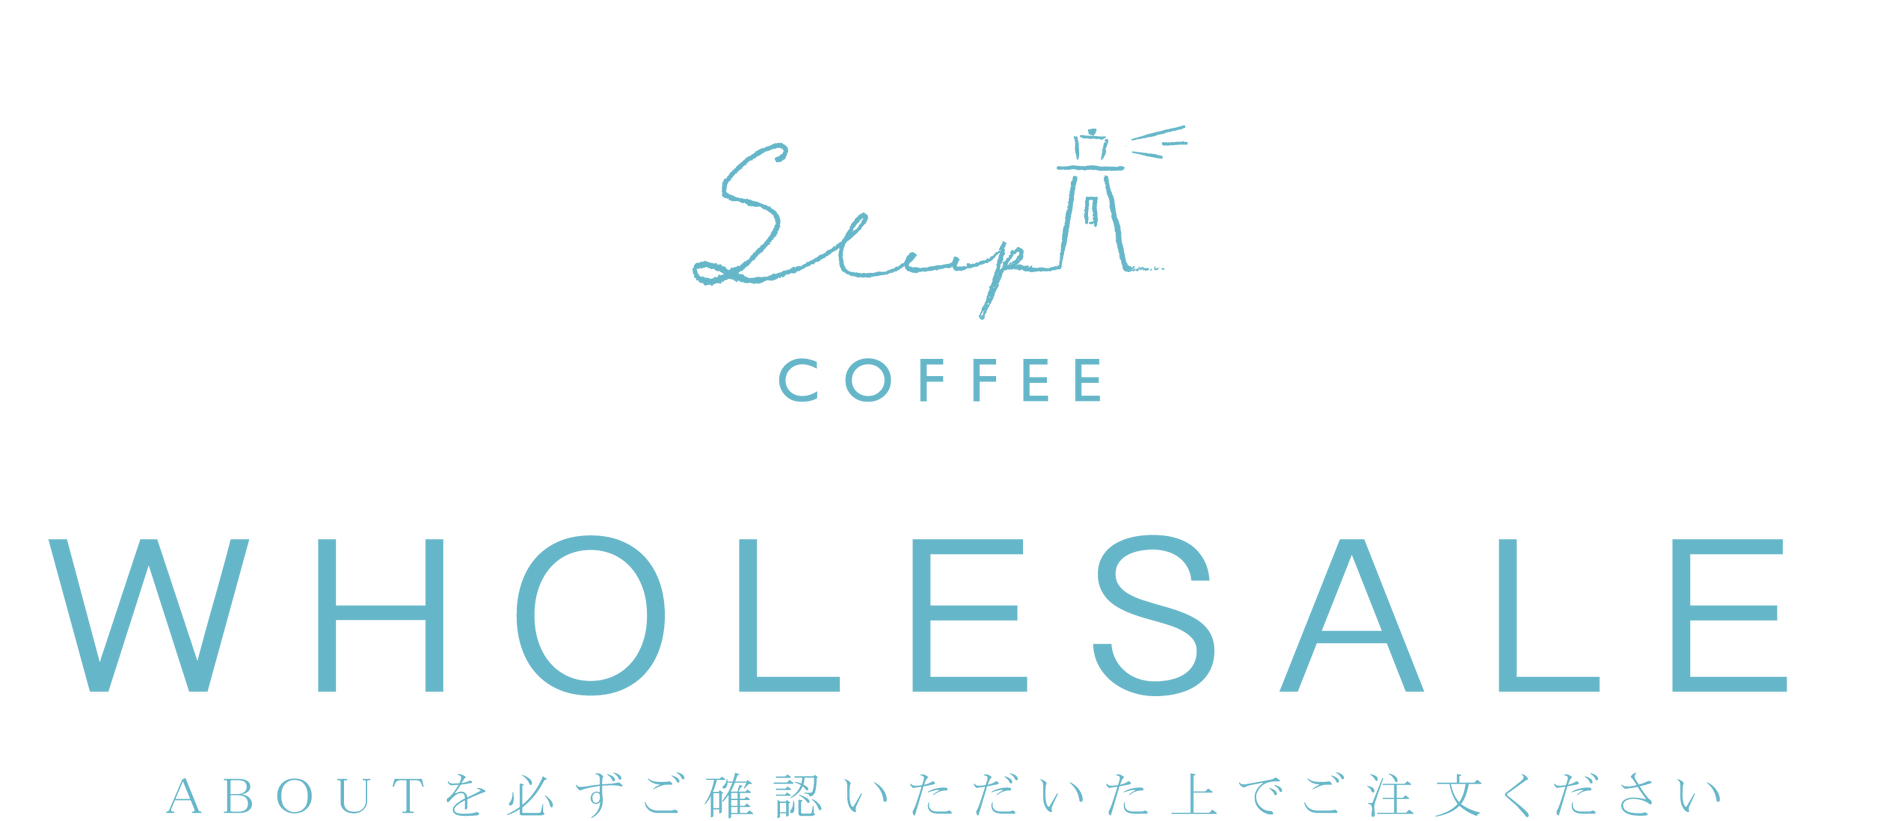 Sleep Coffee and Roaster Wholesale